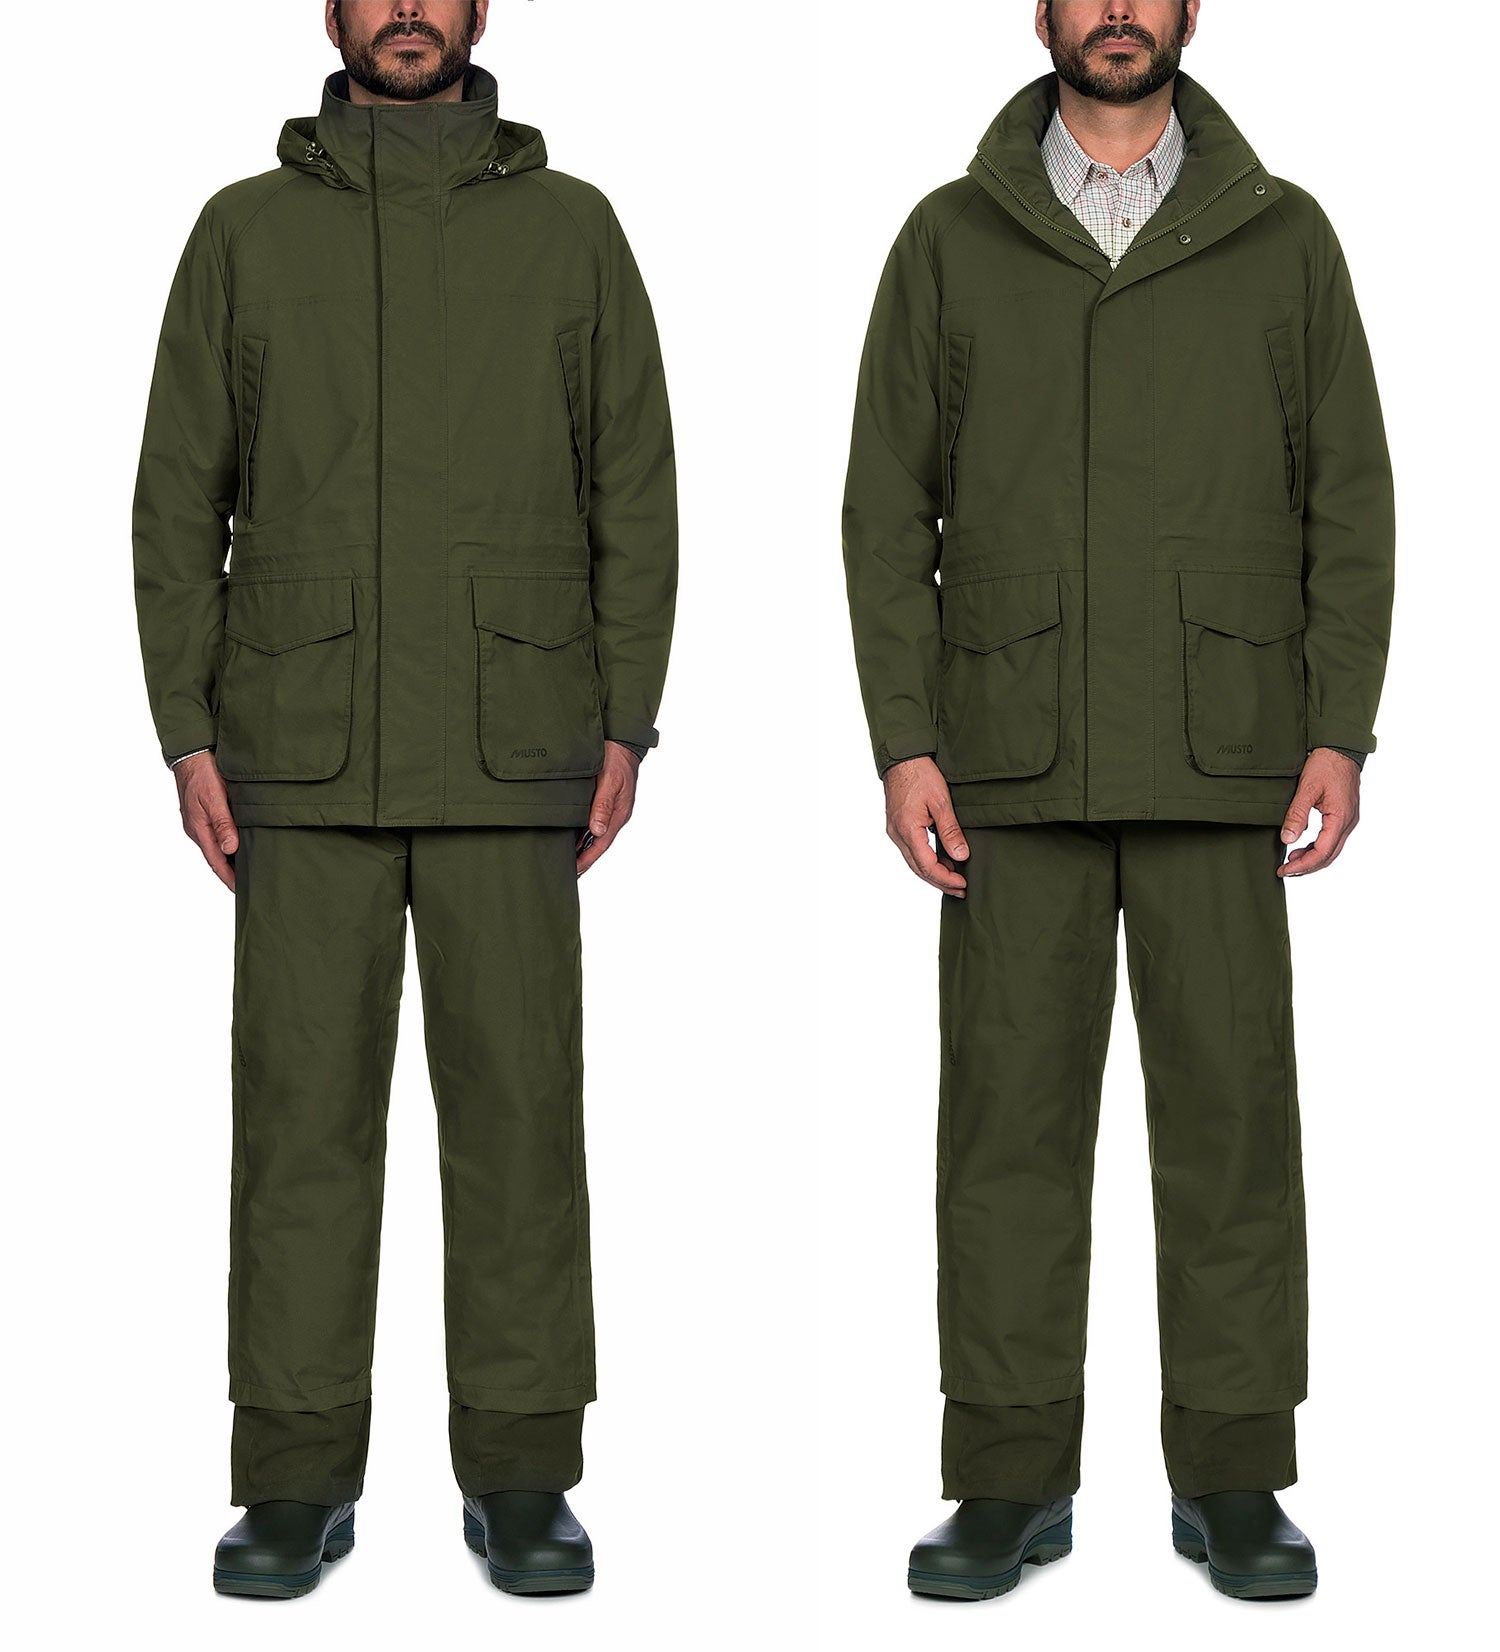 Showing Collar open and closed Musto Fenland BR2 Packaway Jacket